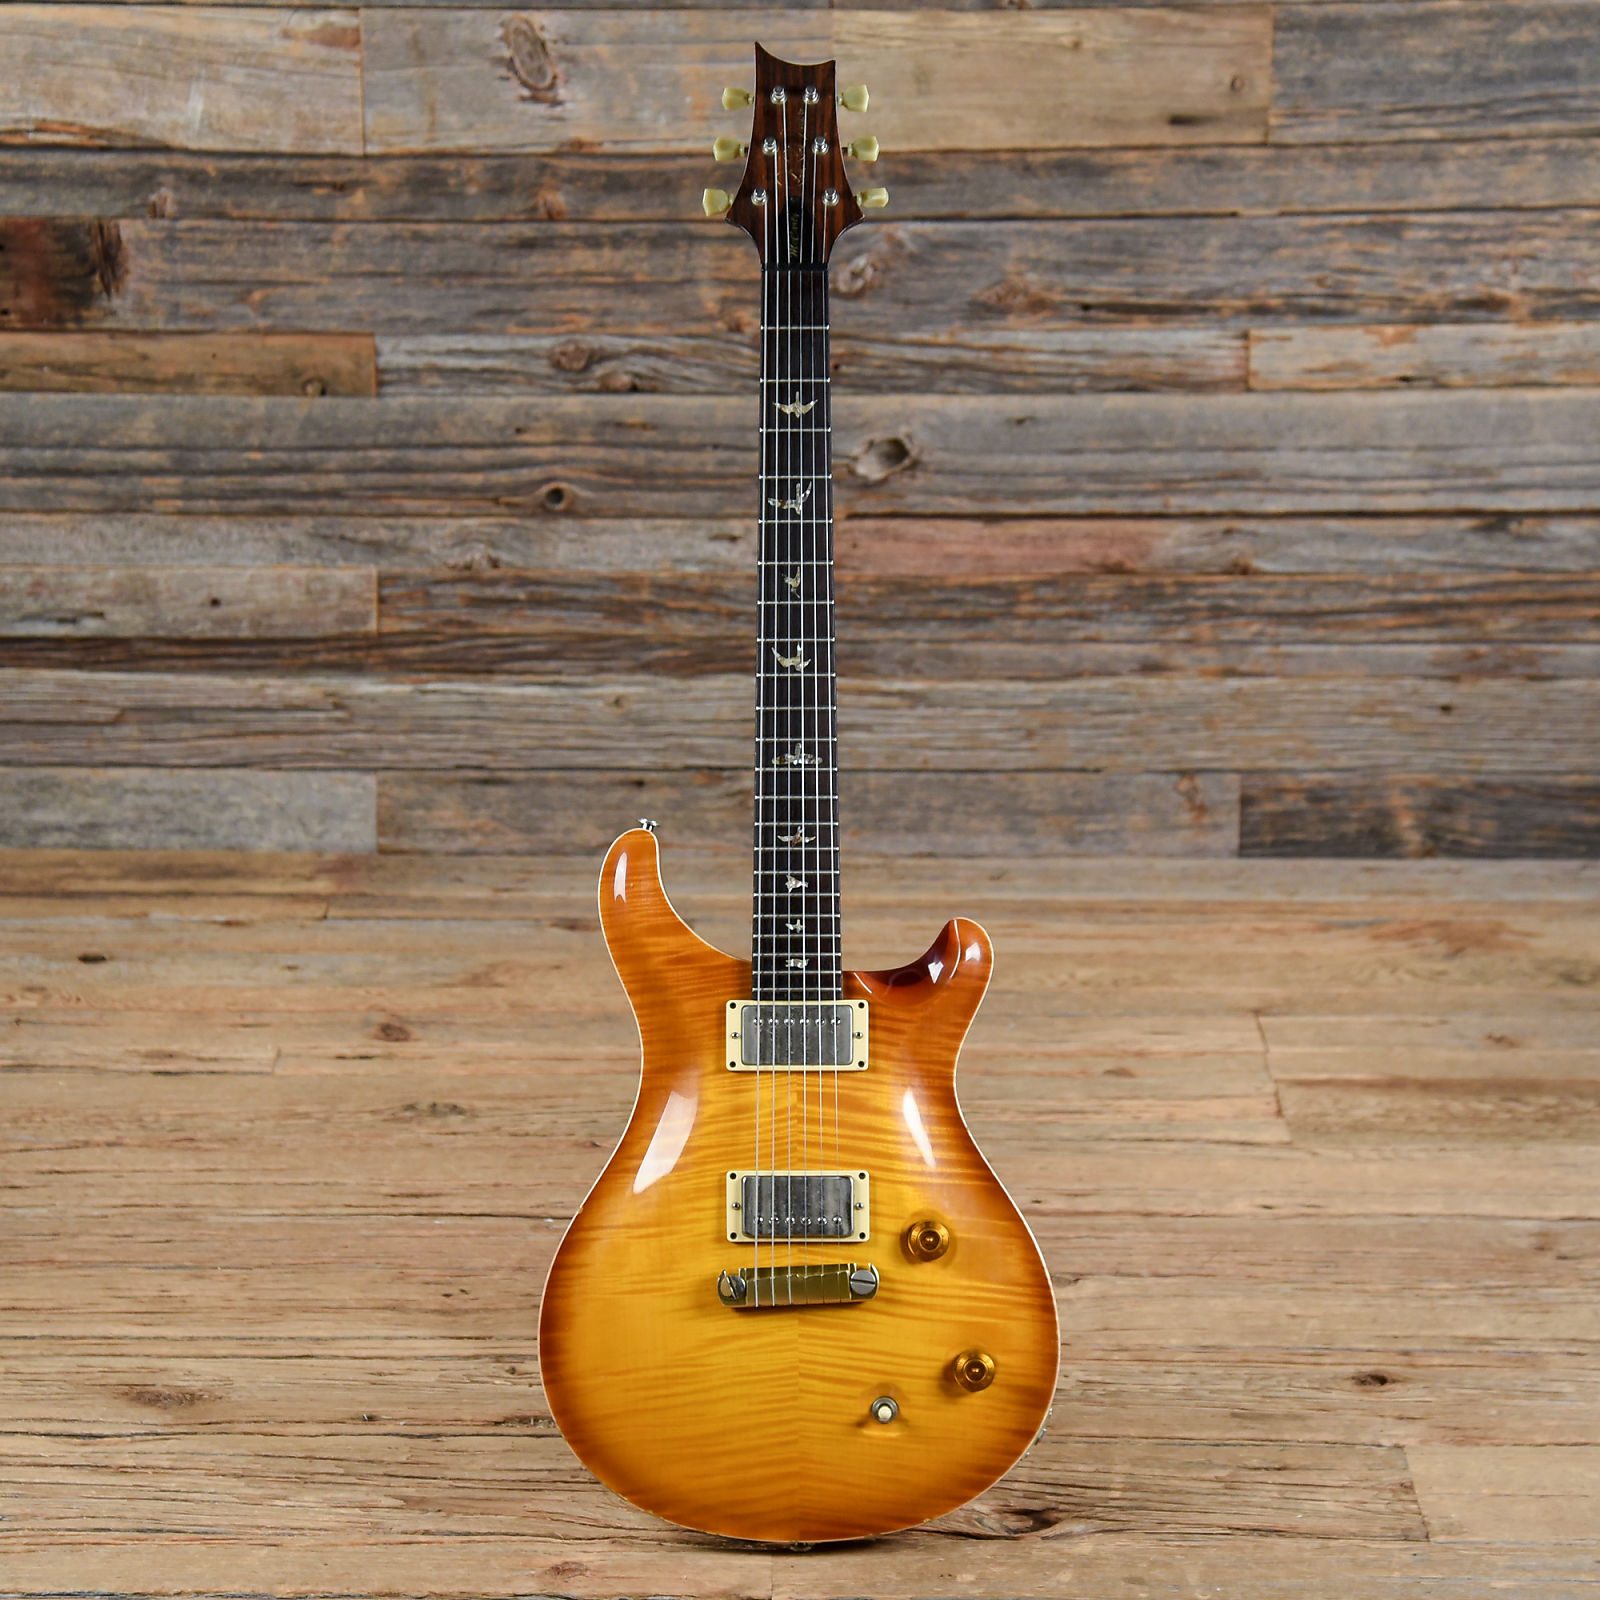 Prs Mccarty Wiring Harness. Emg Wiring Harness, Jbl Wiring Harness on gibson sg wiring harness, jackson soloist decal, prs wiring harness,